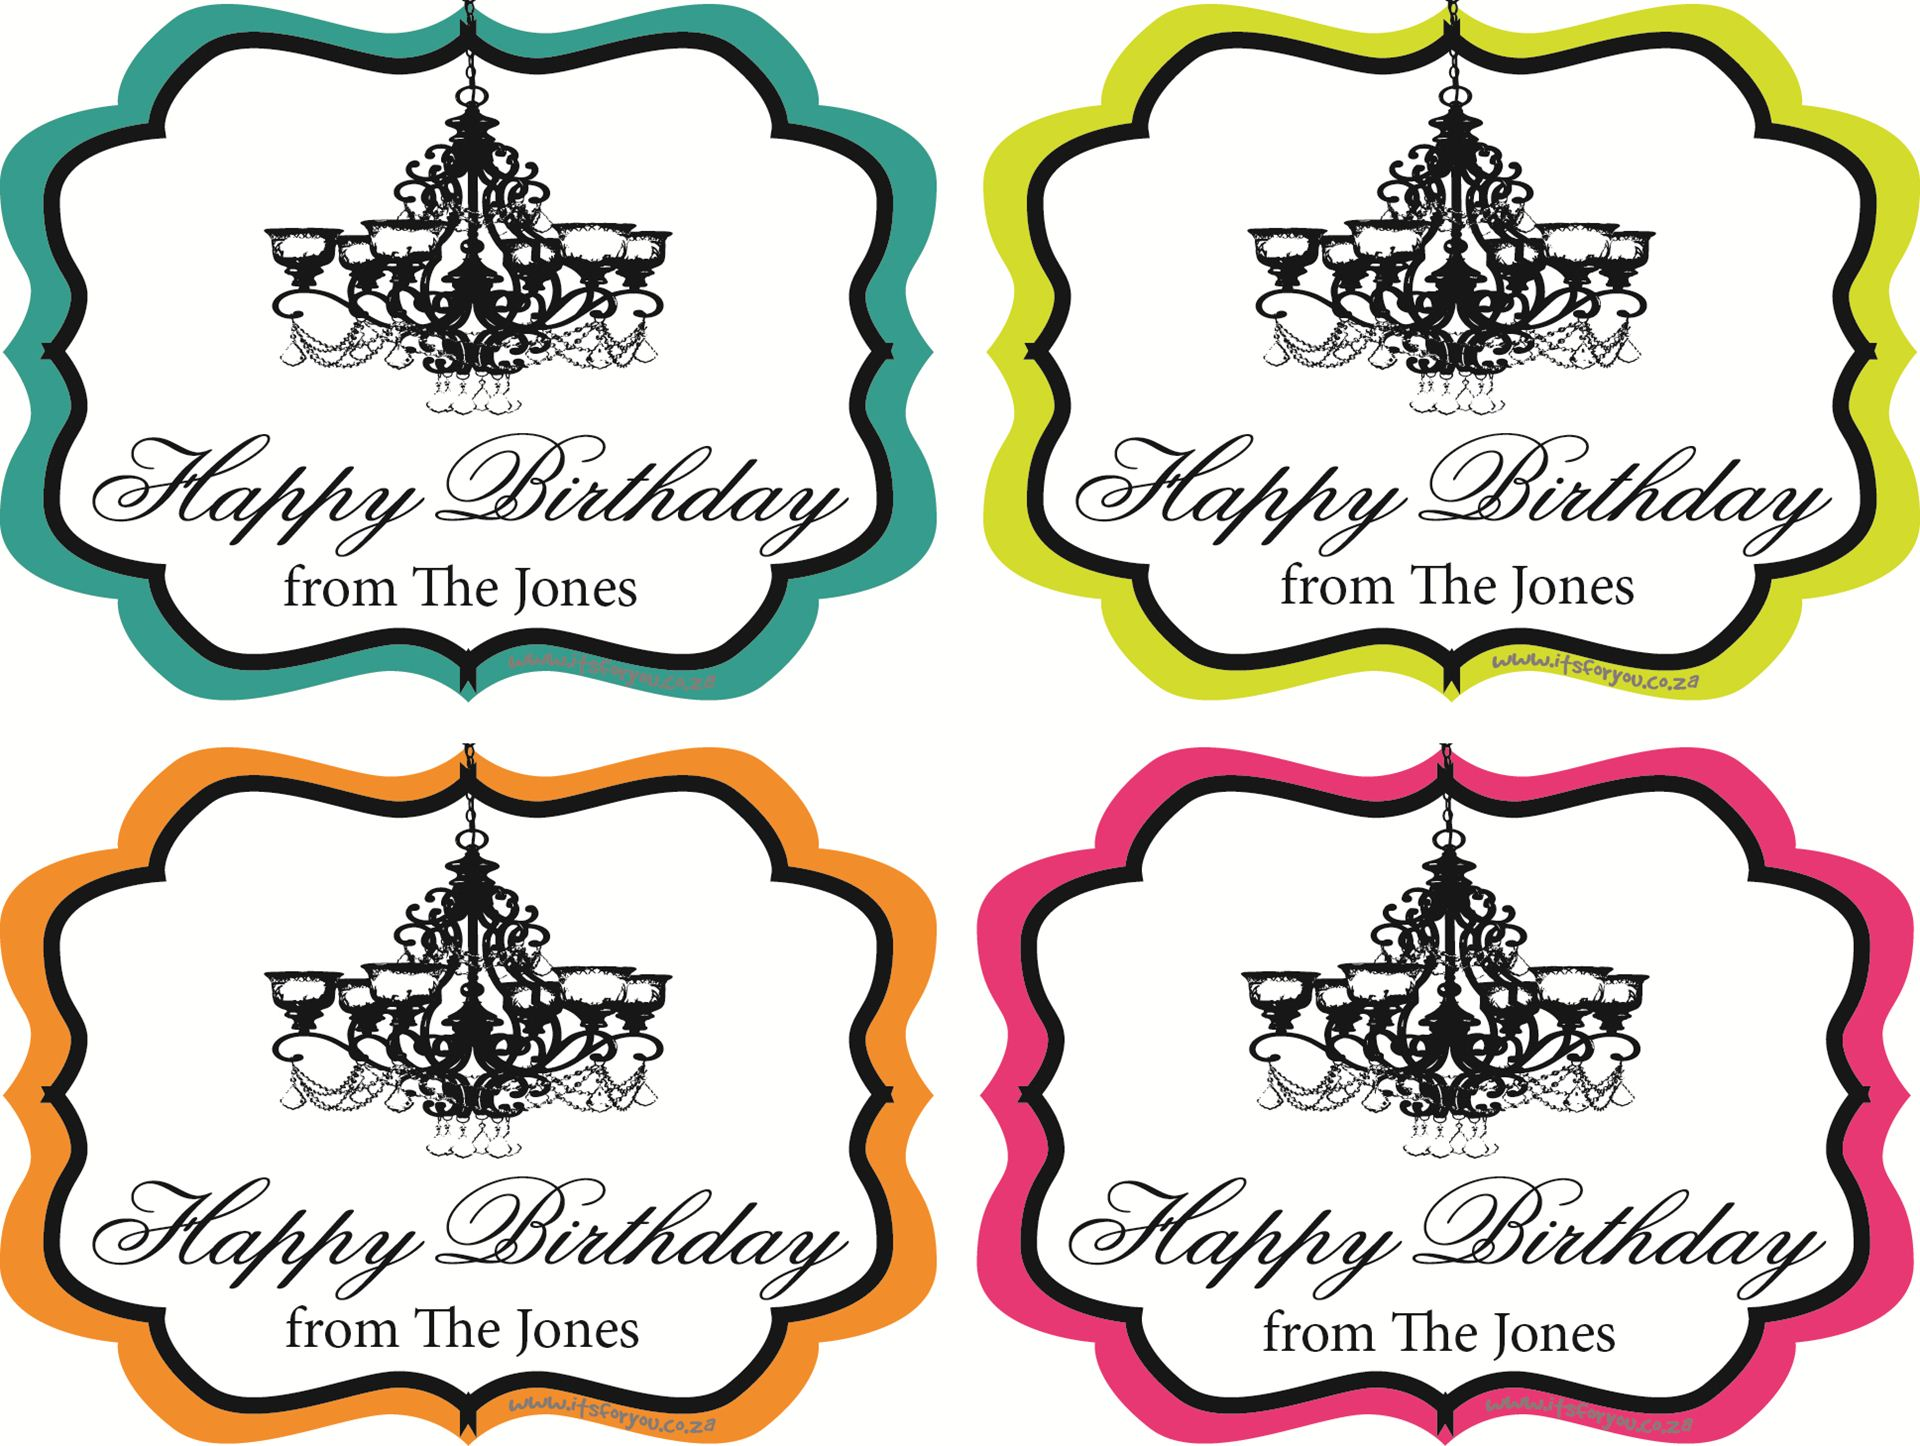 birthday gift stickers ; 0001768_gift-sticker-happy-birthday-chandelier-framed